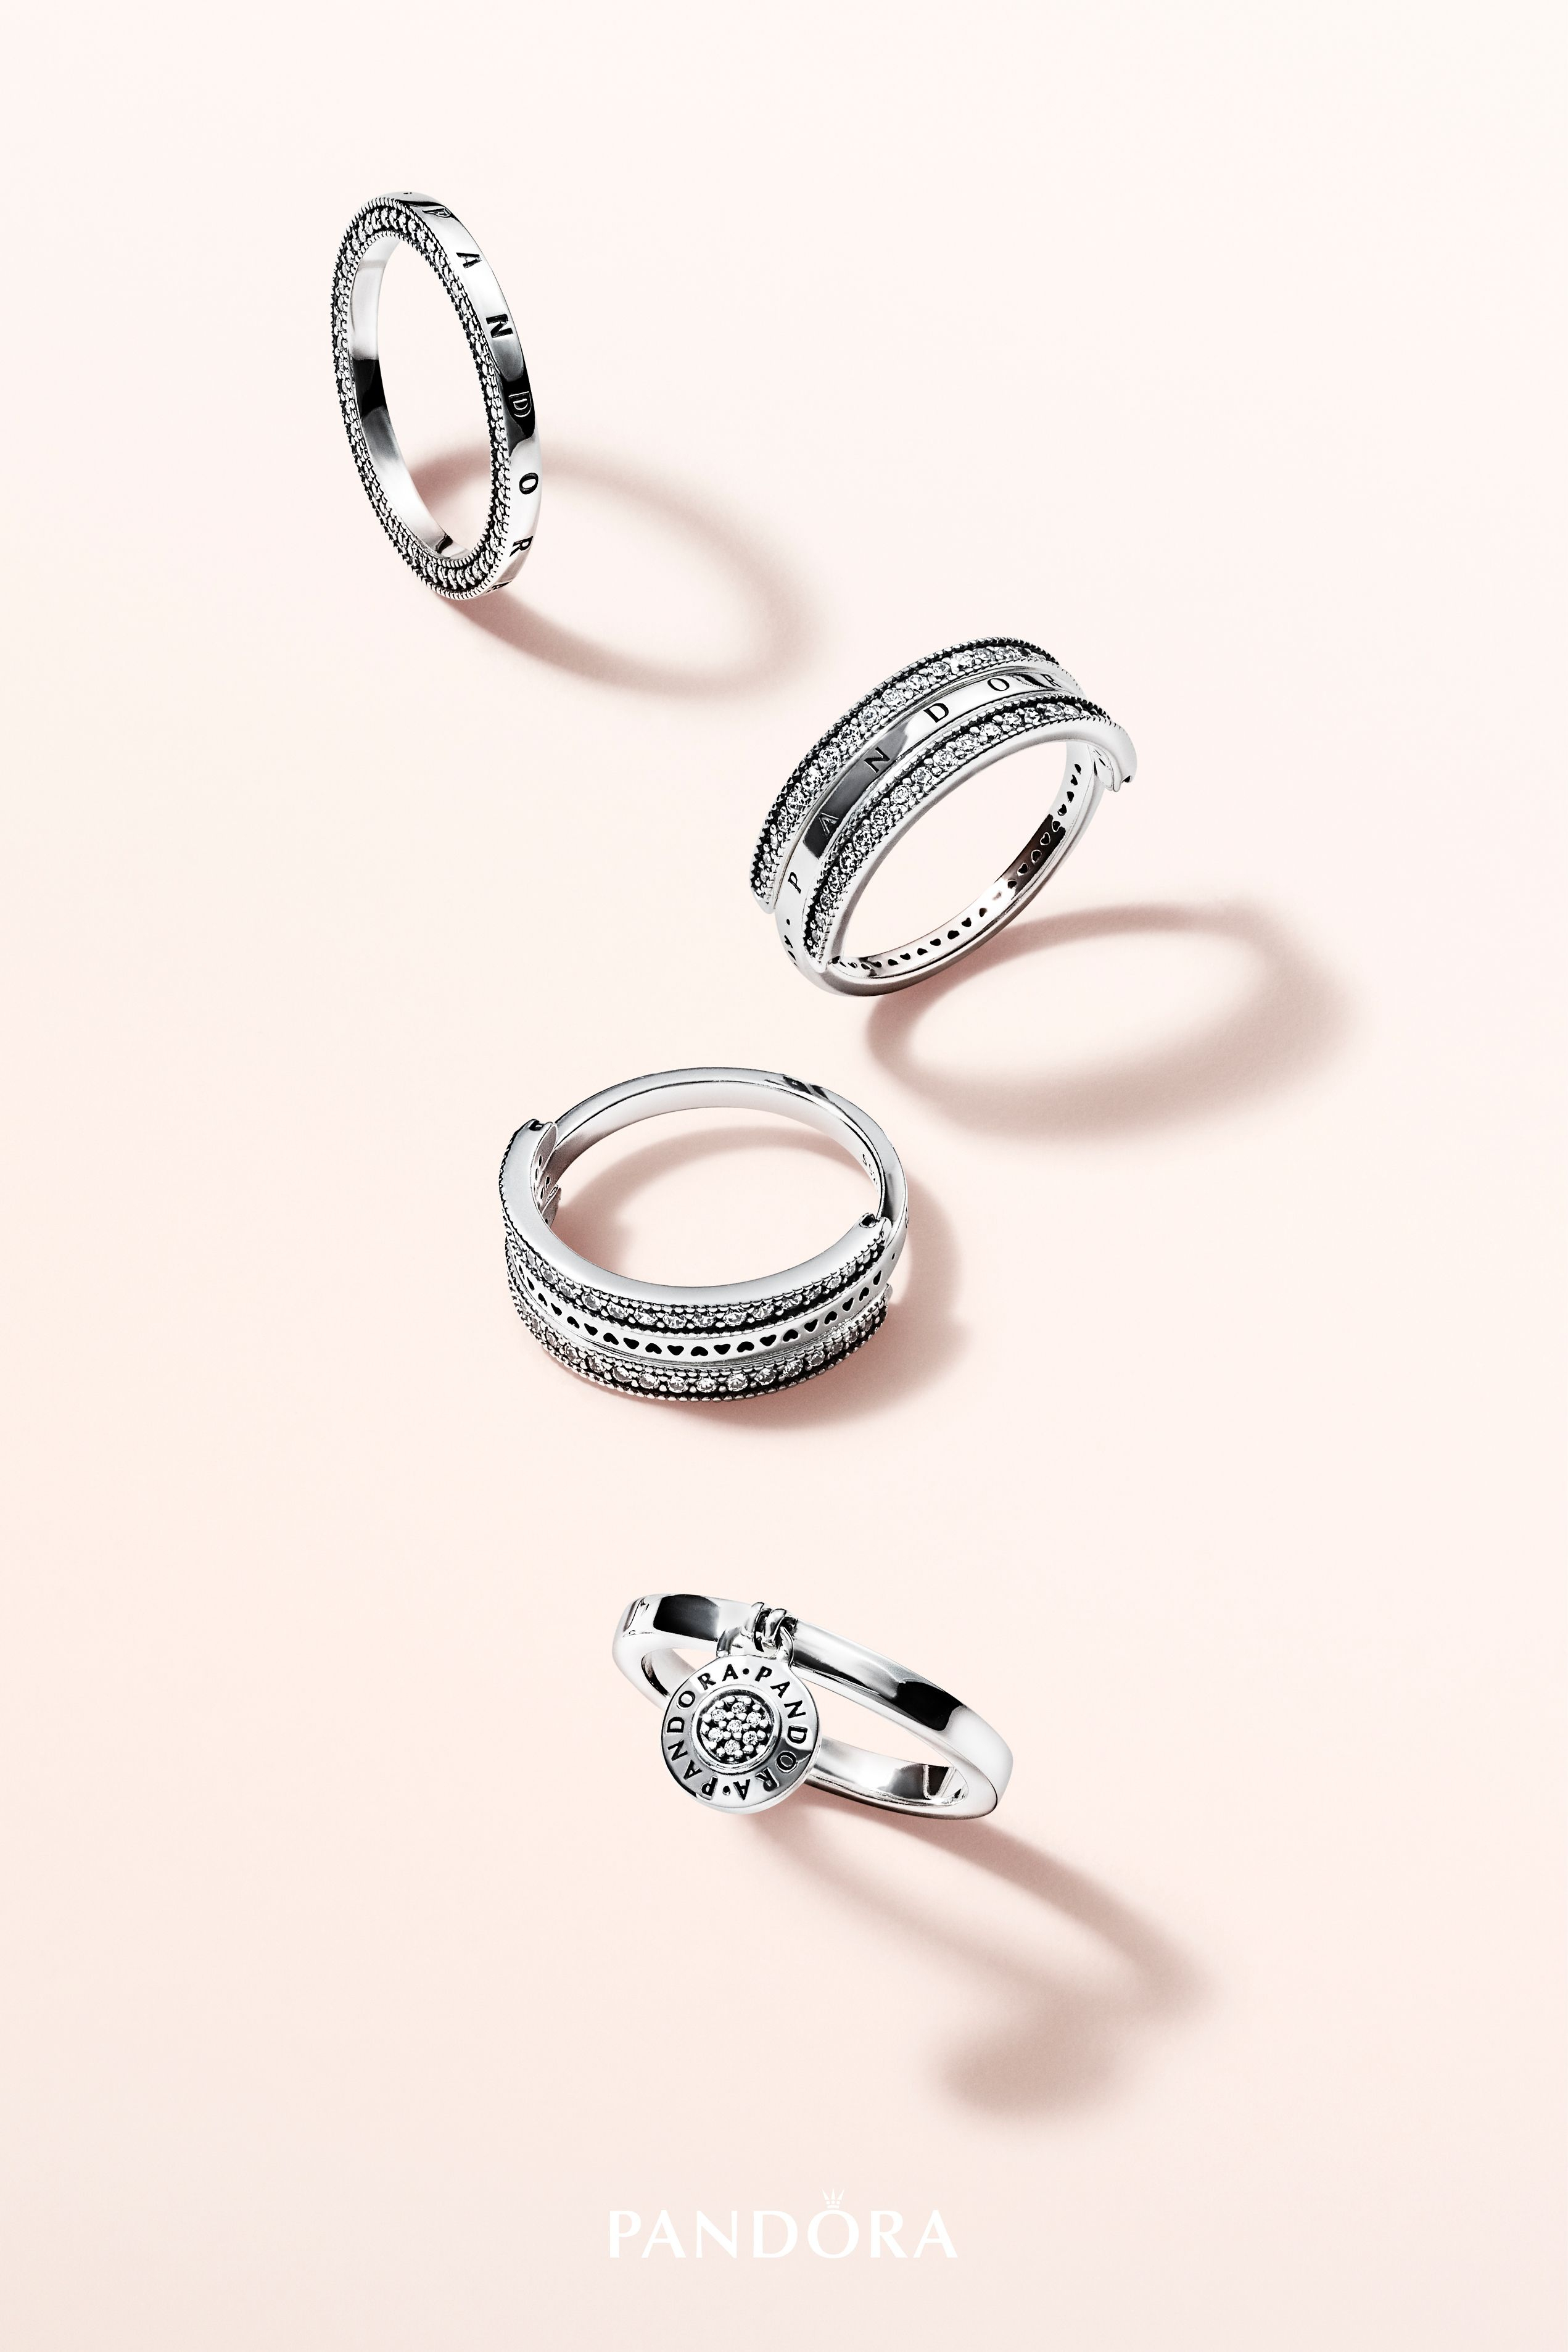 Make A Timeless Statement With New Rings From The Pandora Signature Regarding Most Popular Pandora Logo Pavé Rings (View 9 of 25)